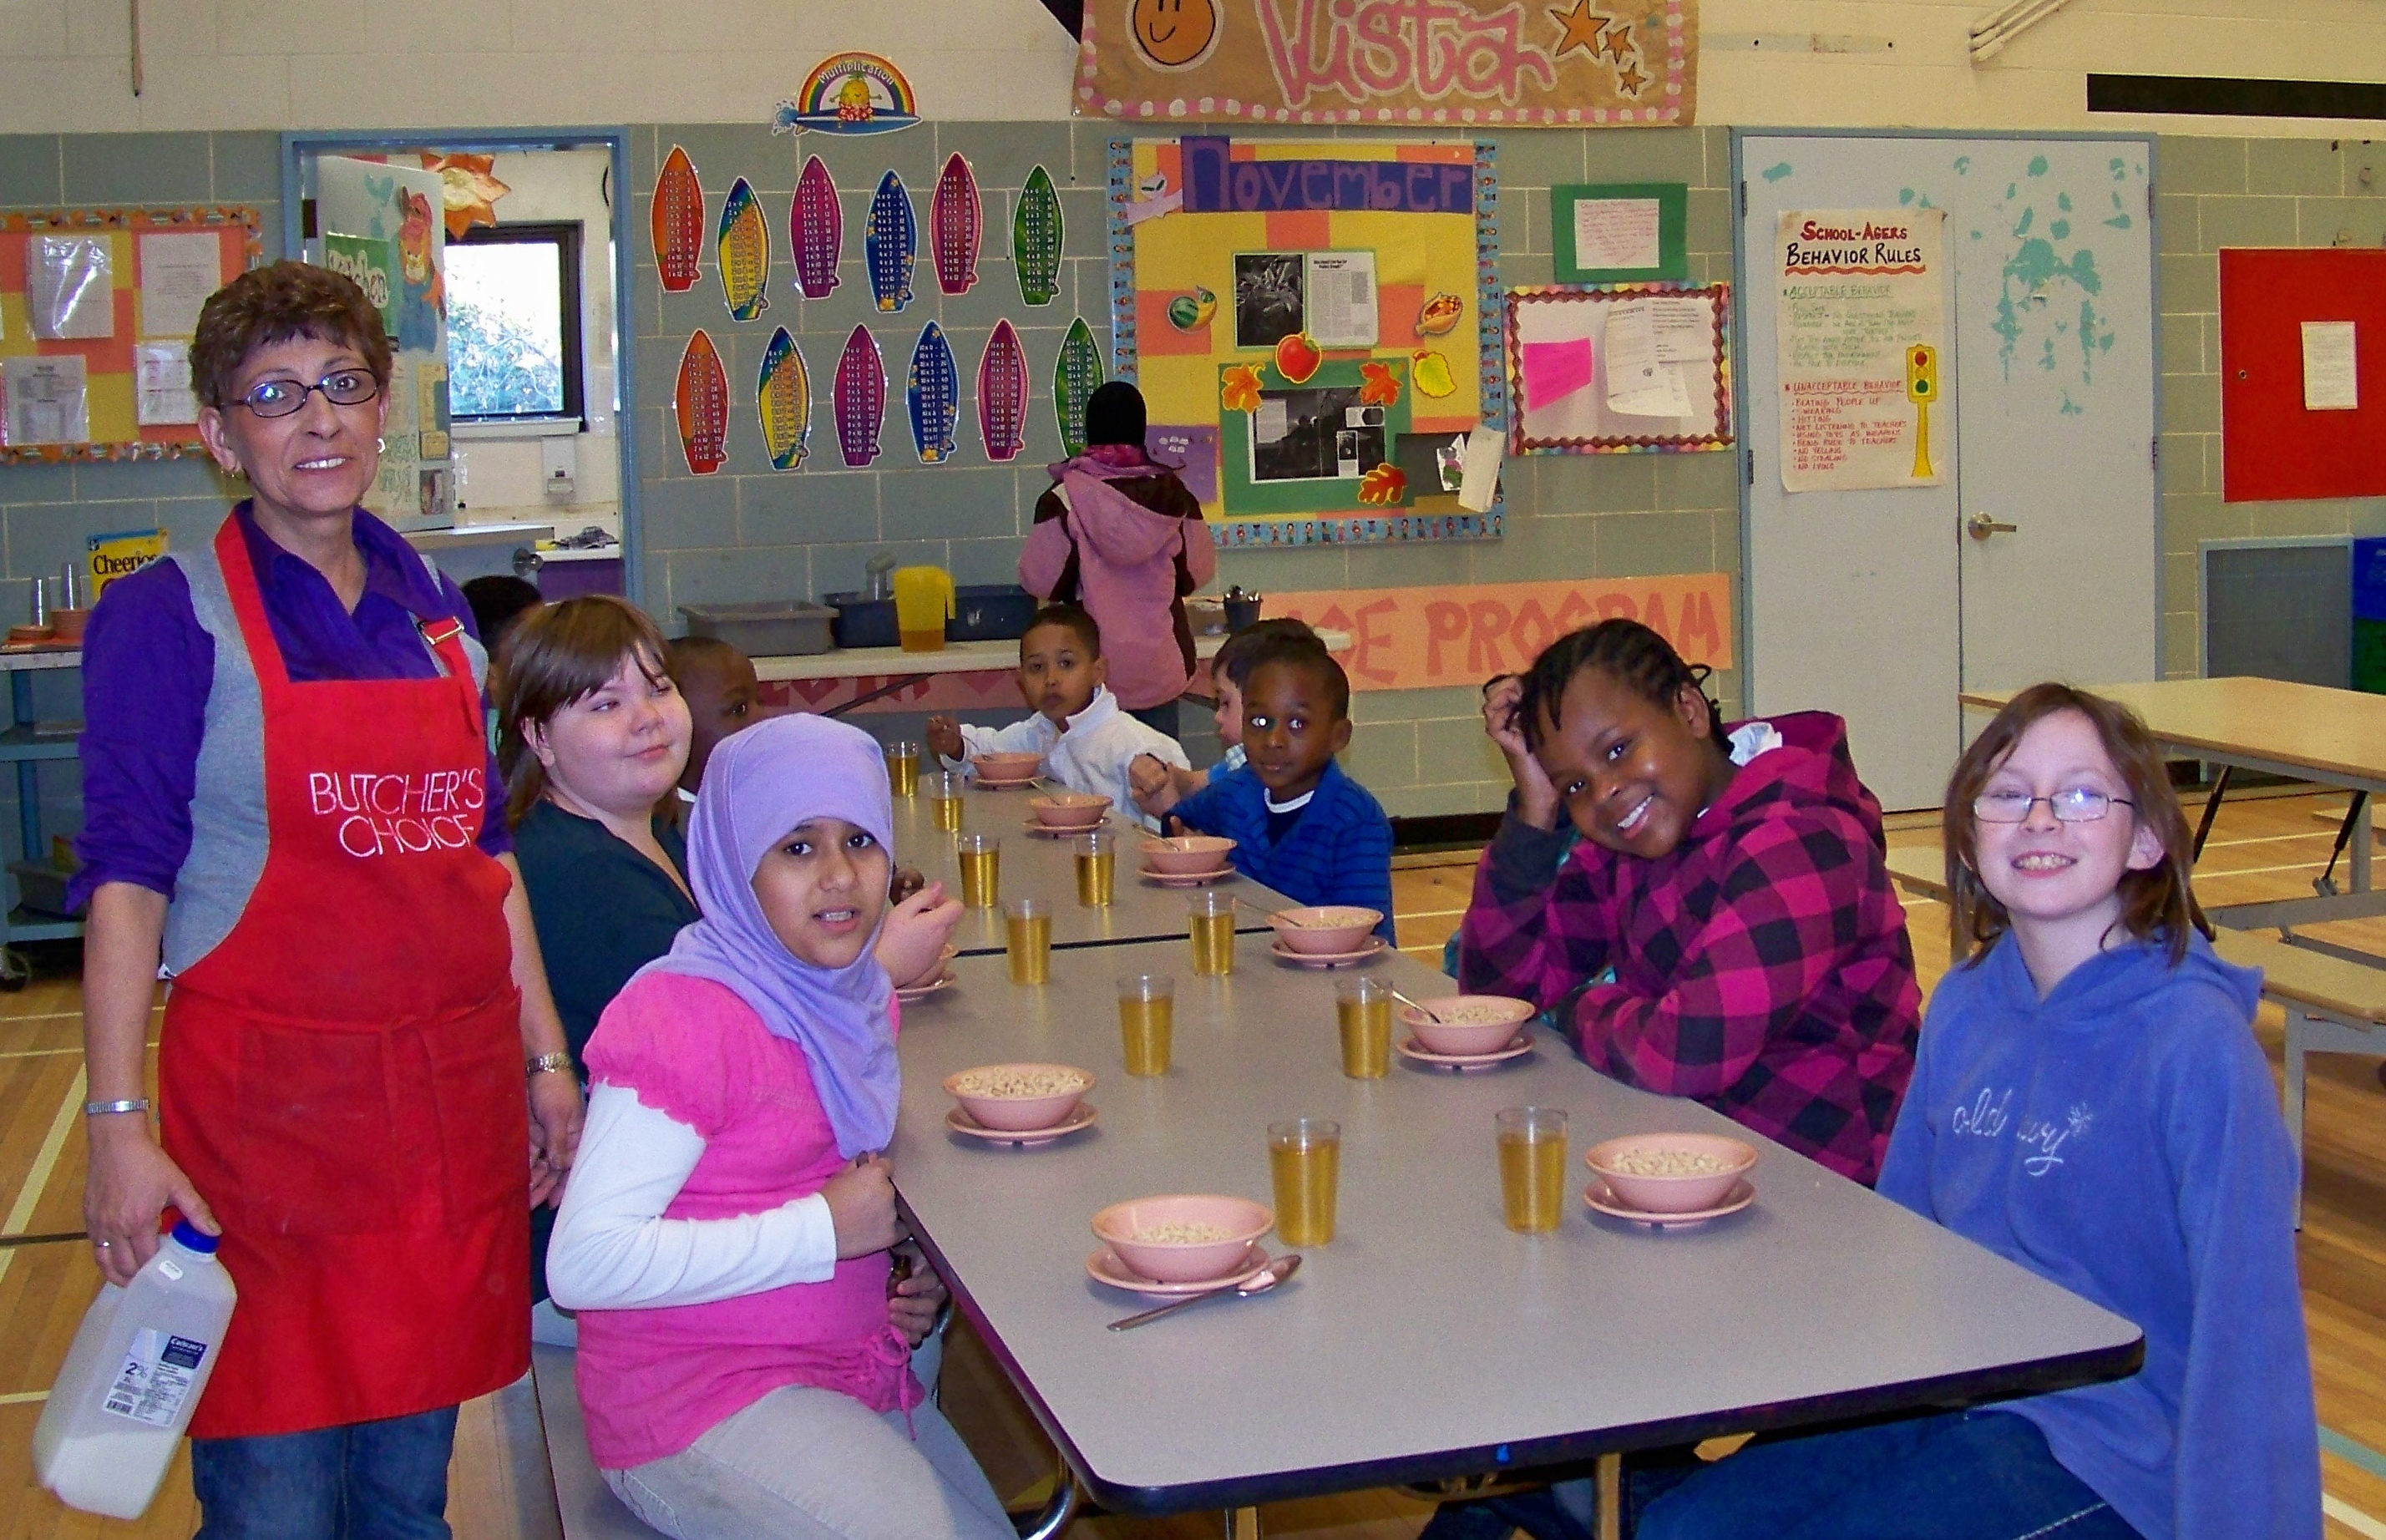 Image of students eating breakfast in school